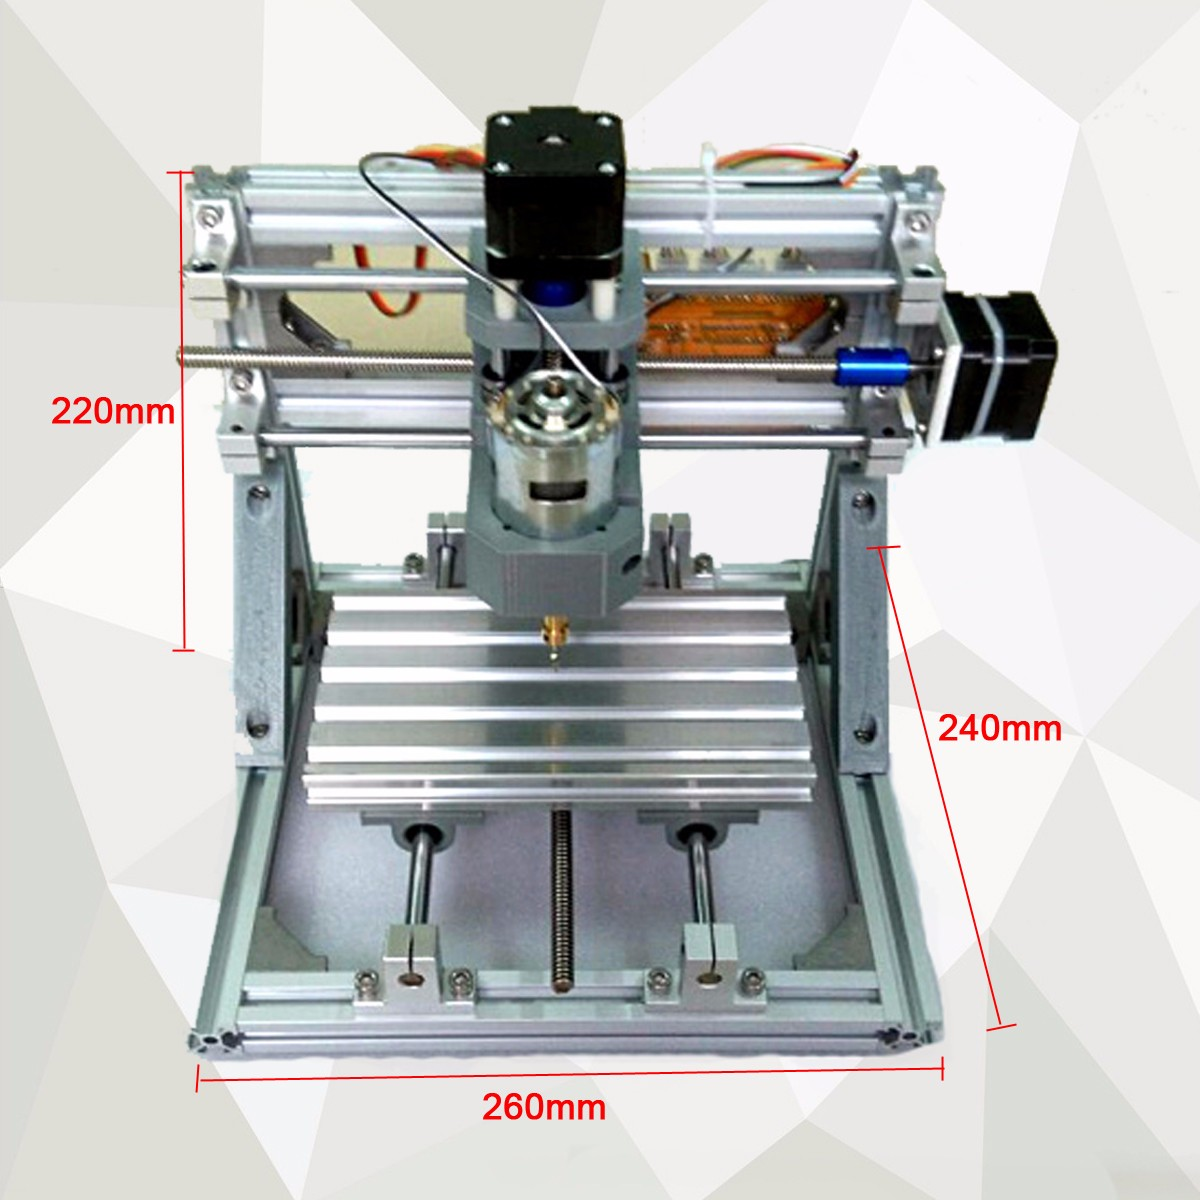 DIY Mini 3 Axis Router CNC Machine 1610 GRBL Control CNC Engraver PCB PVC Milling Wood Carving Machine Working Area 16x10.5x3cm grbl control diy 1610 mini cnc machine wood carving machine 3 axis pcb milling machine wood router arduino cnc router dhl ship